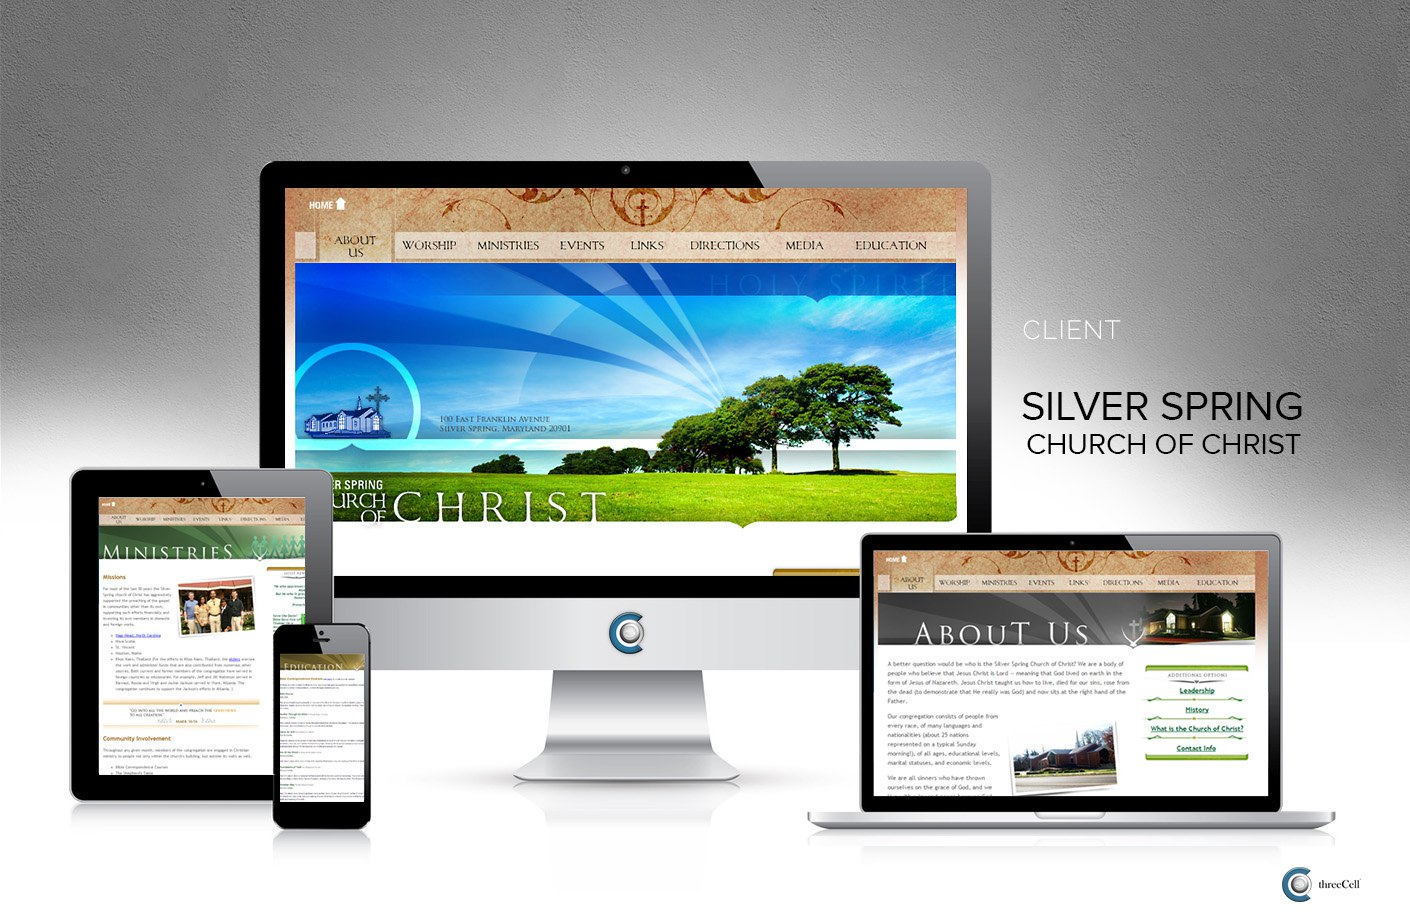 Silver Spring Church of Christ - Website - ThreeCell Web Design